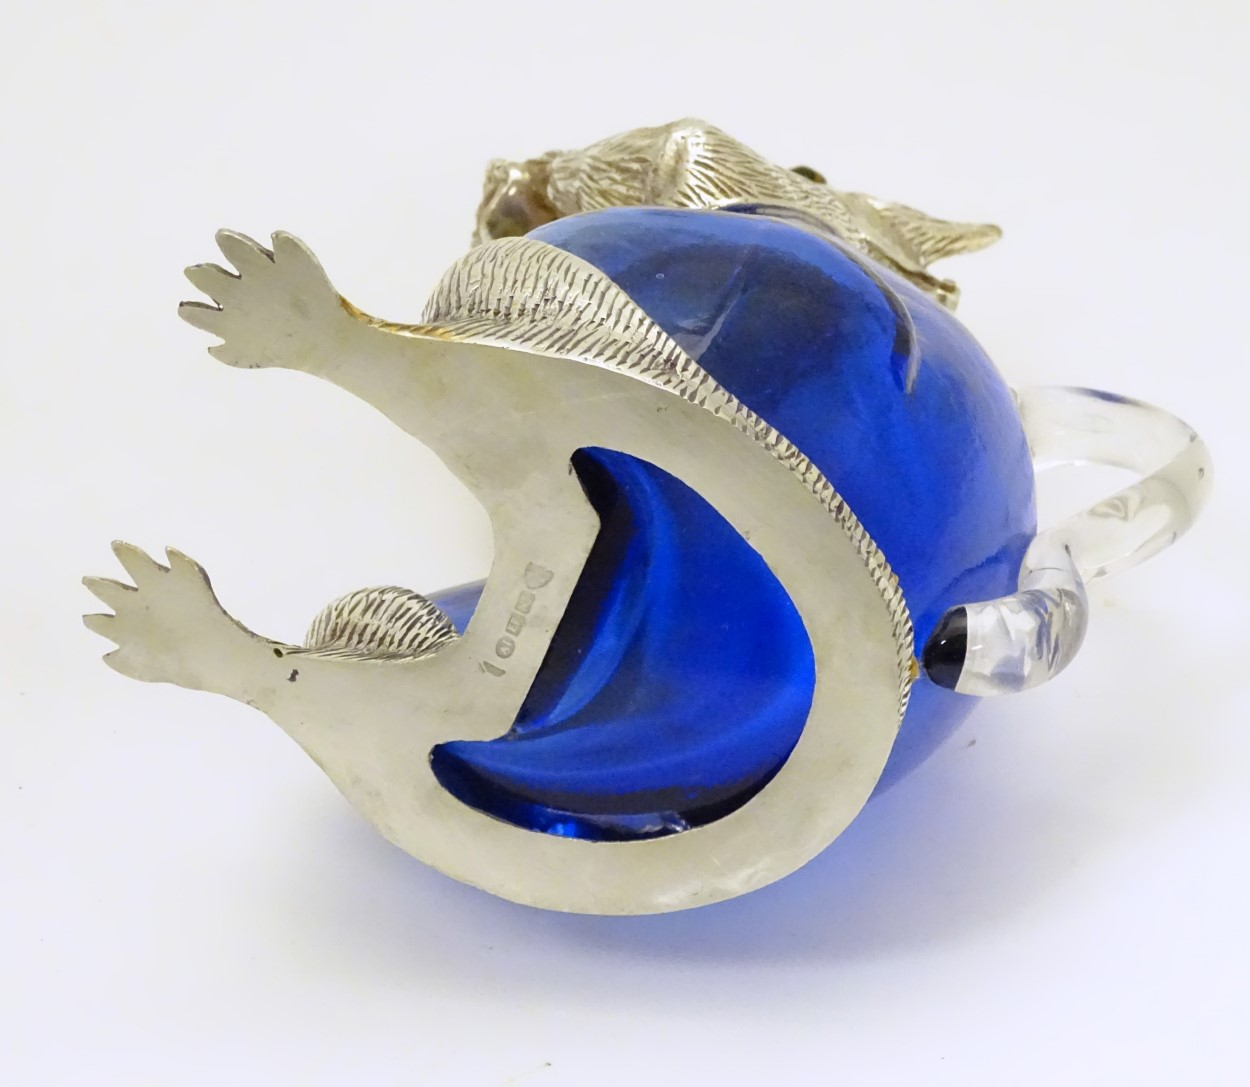 Lot 108 - Glass : a 21 st C blue glass and silver plate claret jug in the form of a squirrel eating a nut ,